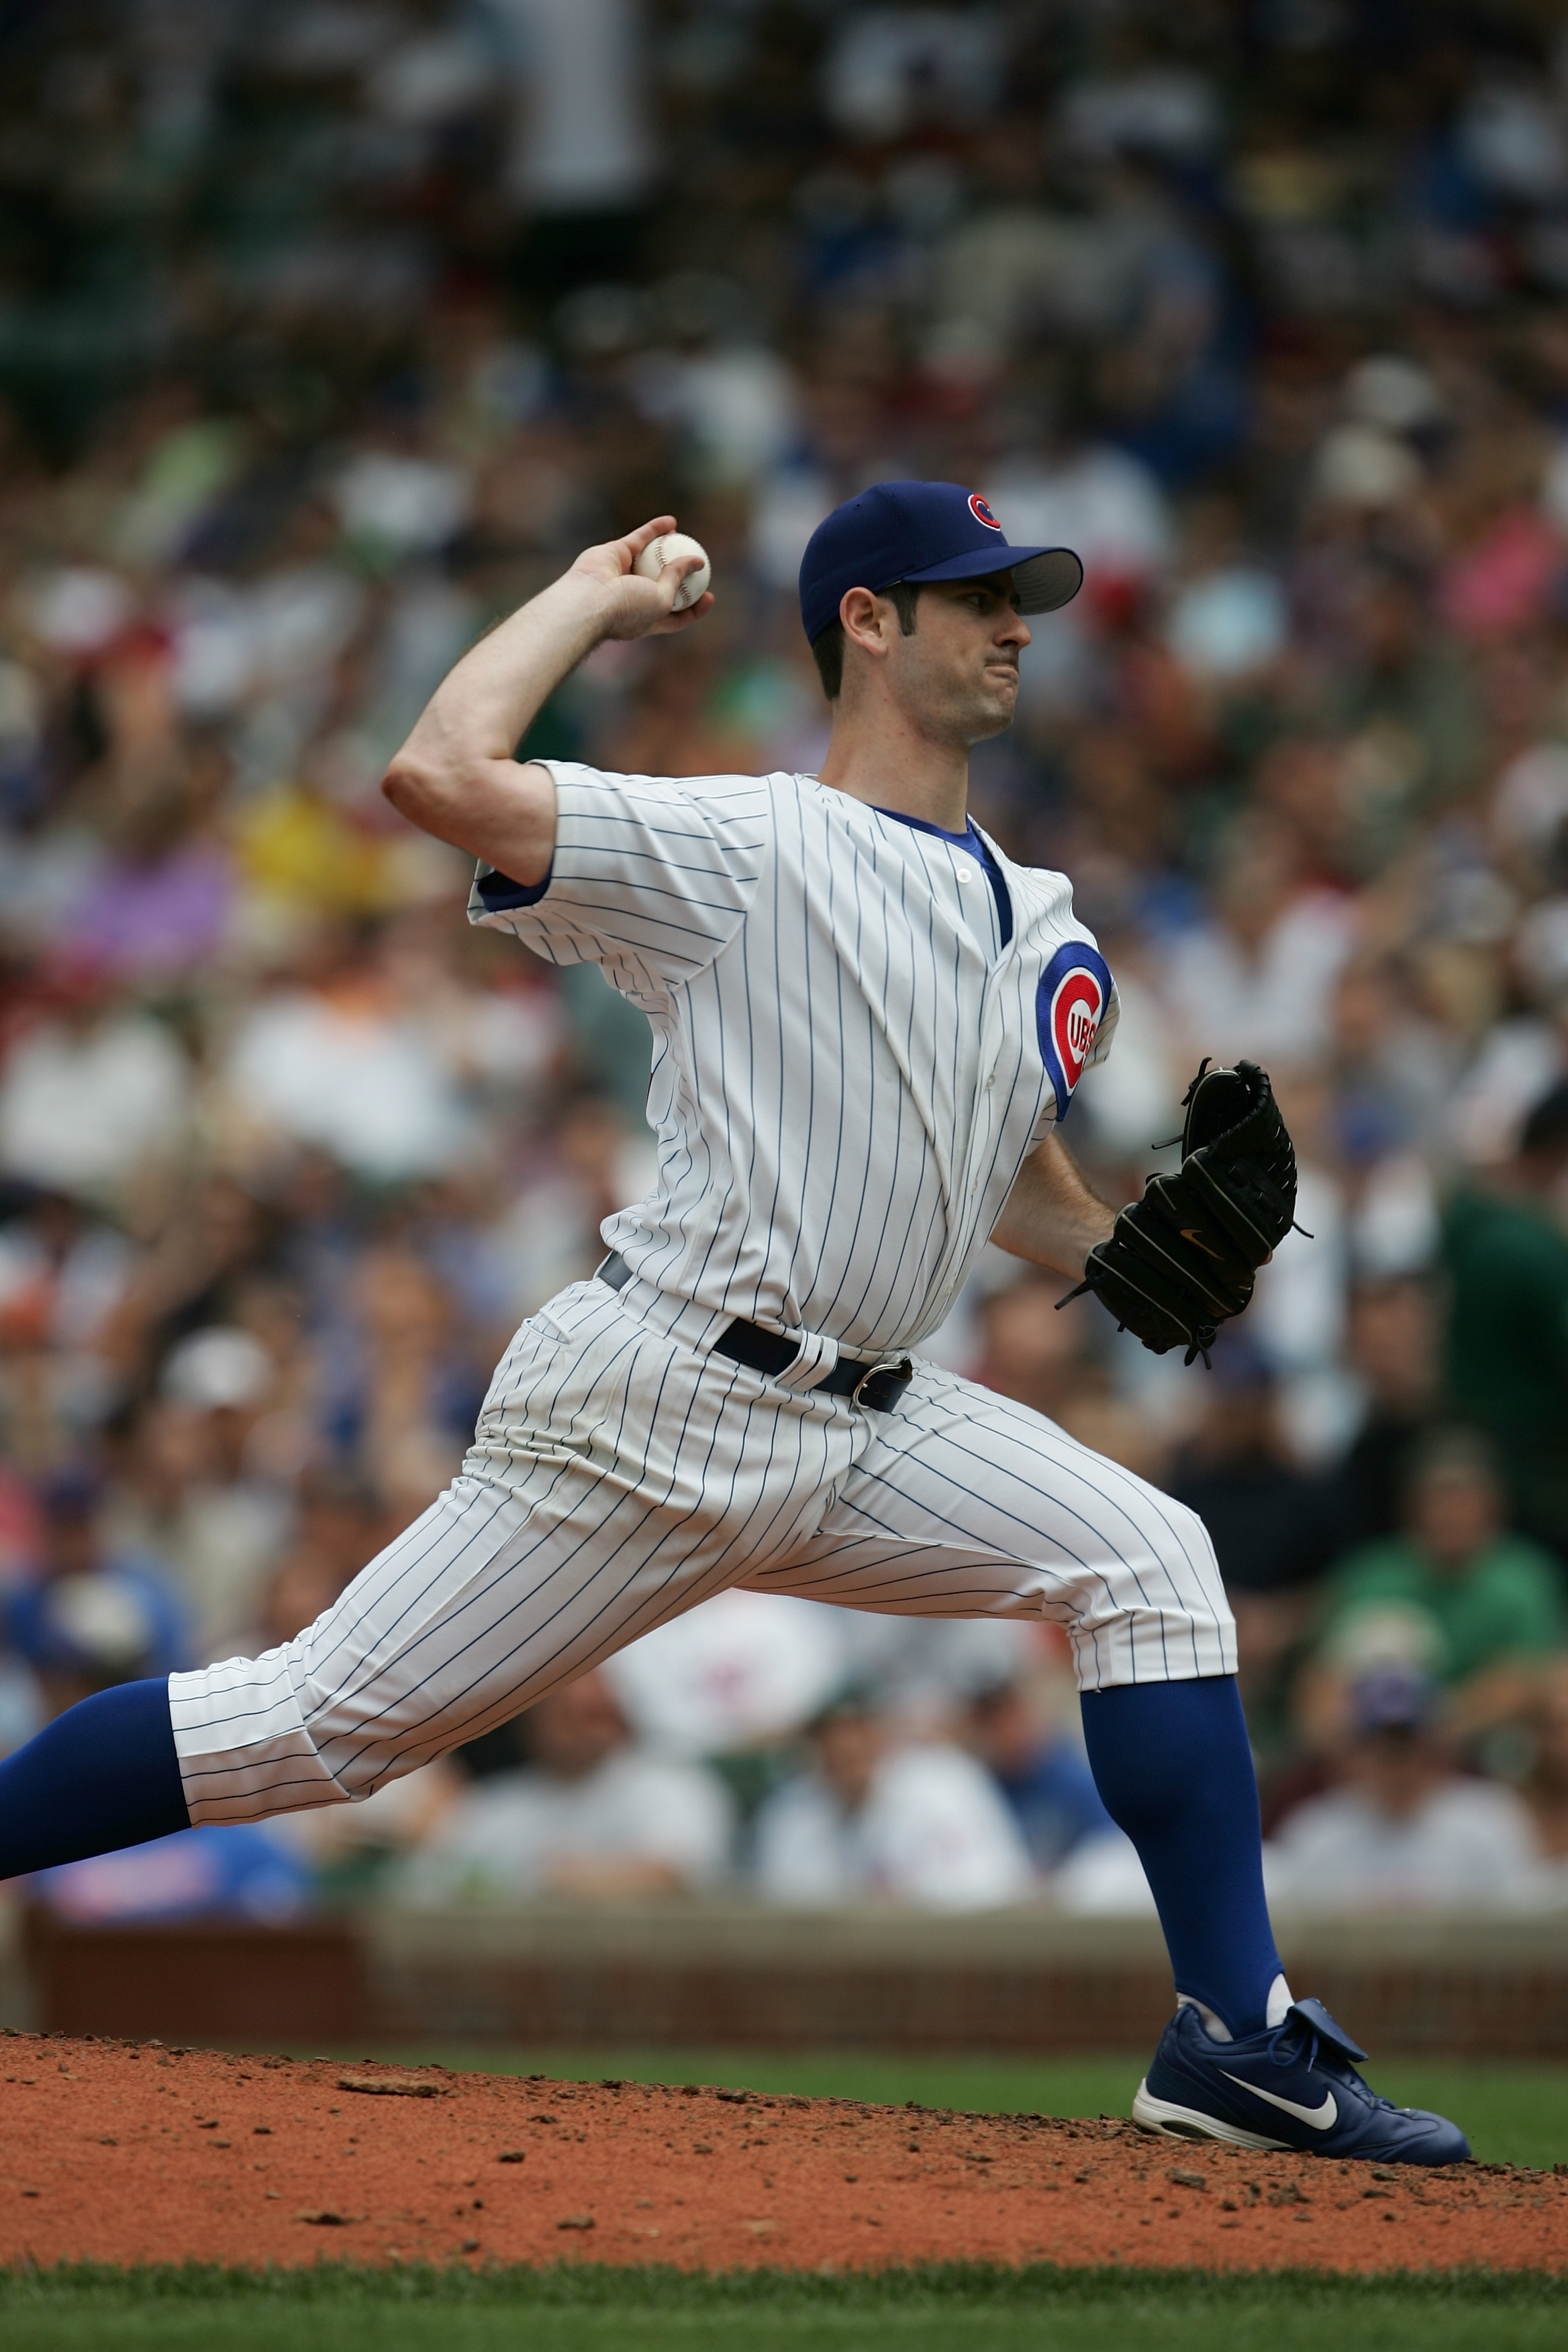 CHICAGO - JULY 1:  Mark Prior #22 of the Chicago Cubs pitches during the game with the Washington Nationals on July 1, 2005 at Wrigley Field in Chicago, Illinois. The Nationals defeated the Cubs 4-3. (Photo by Jonathan Daniel/Getty Images)